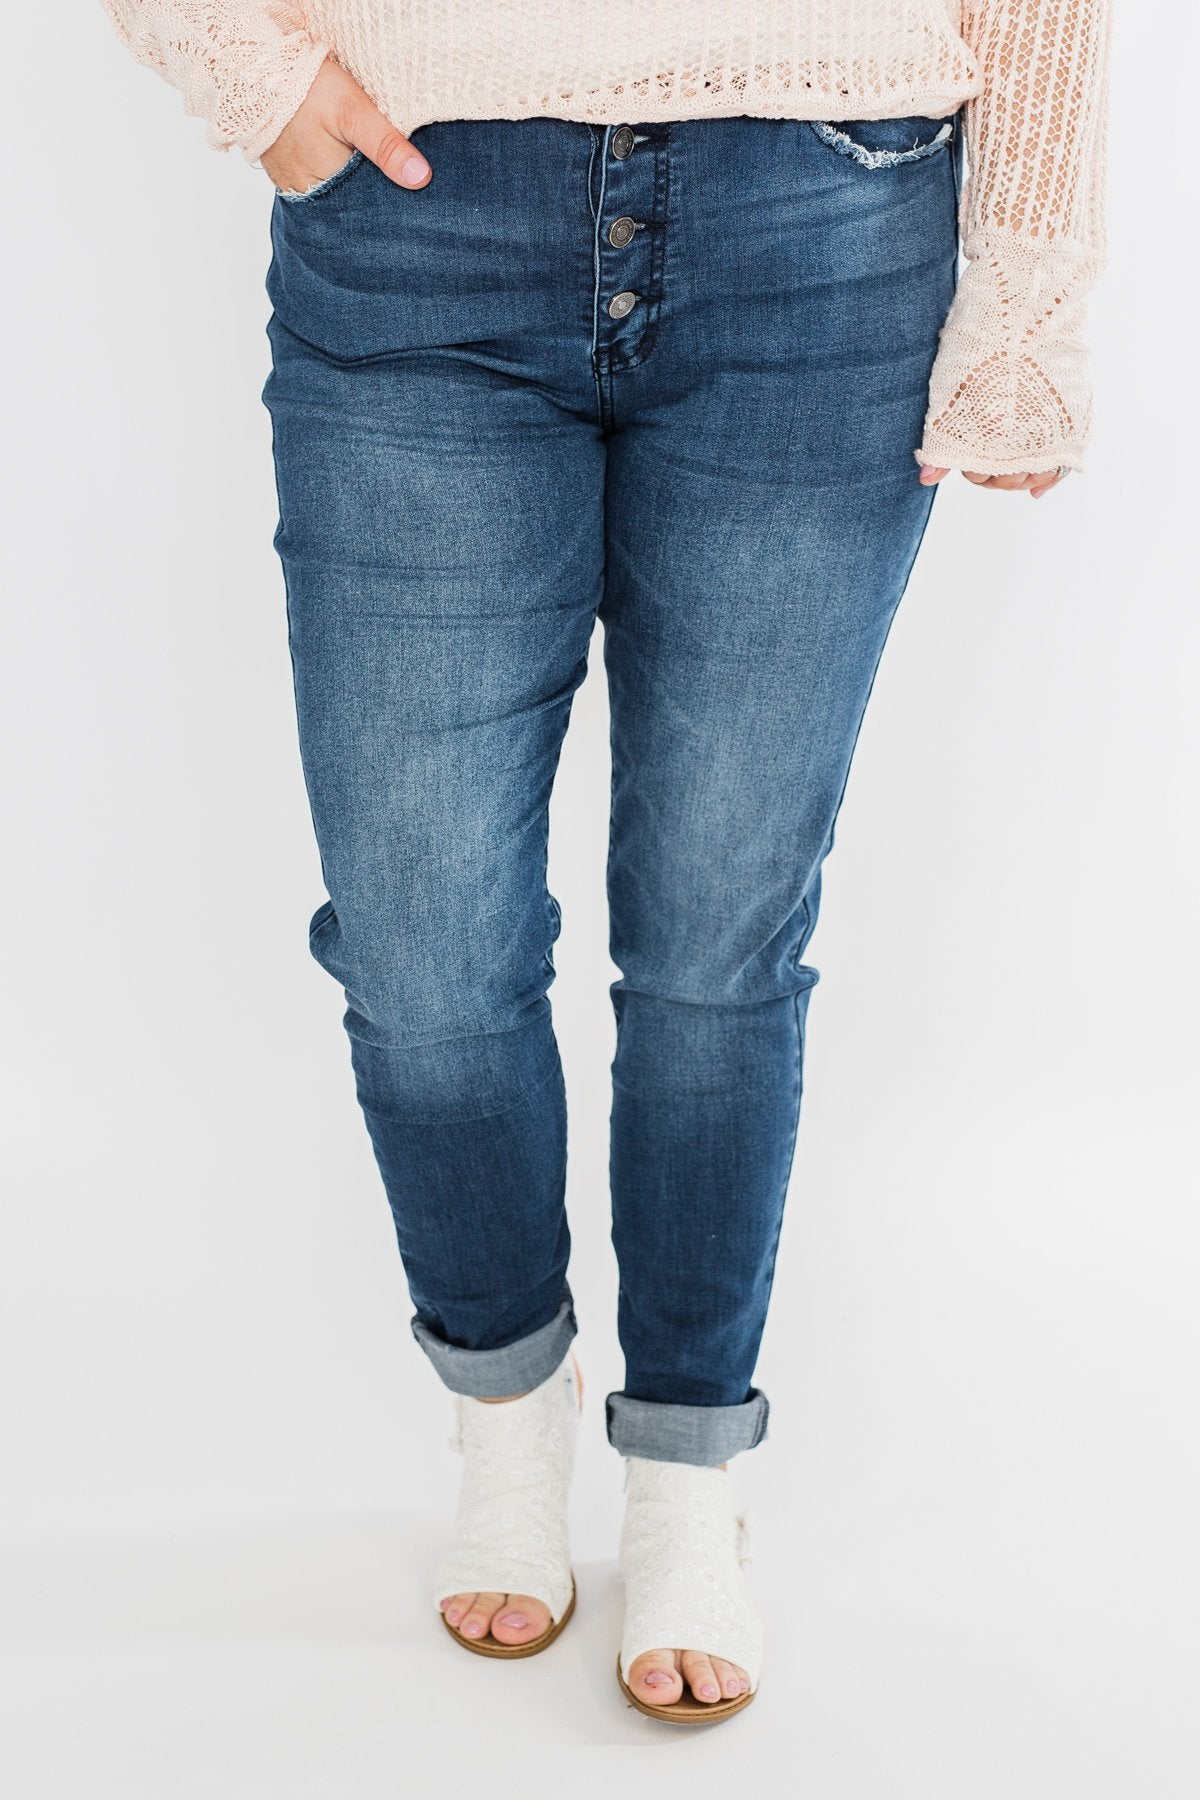 KanCan Button Fly Jeans- Kami Wash